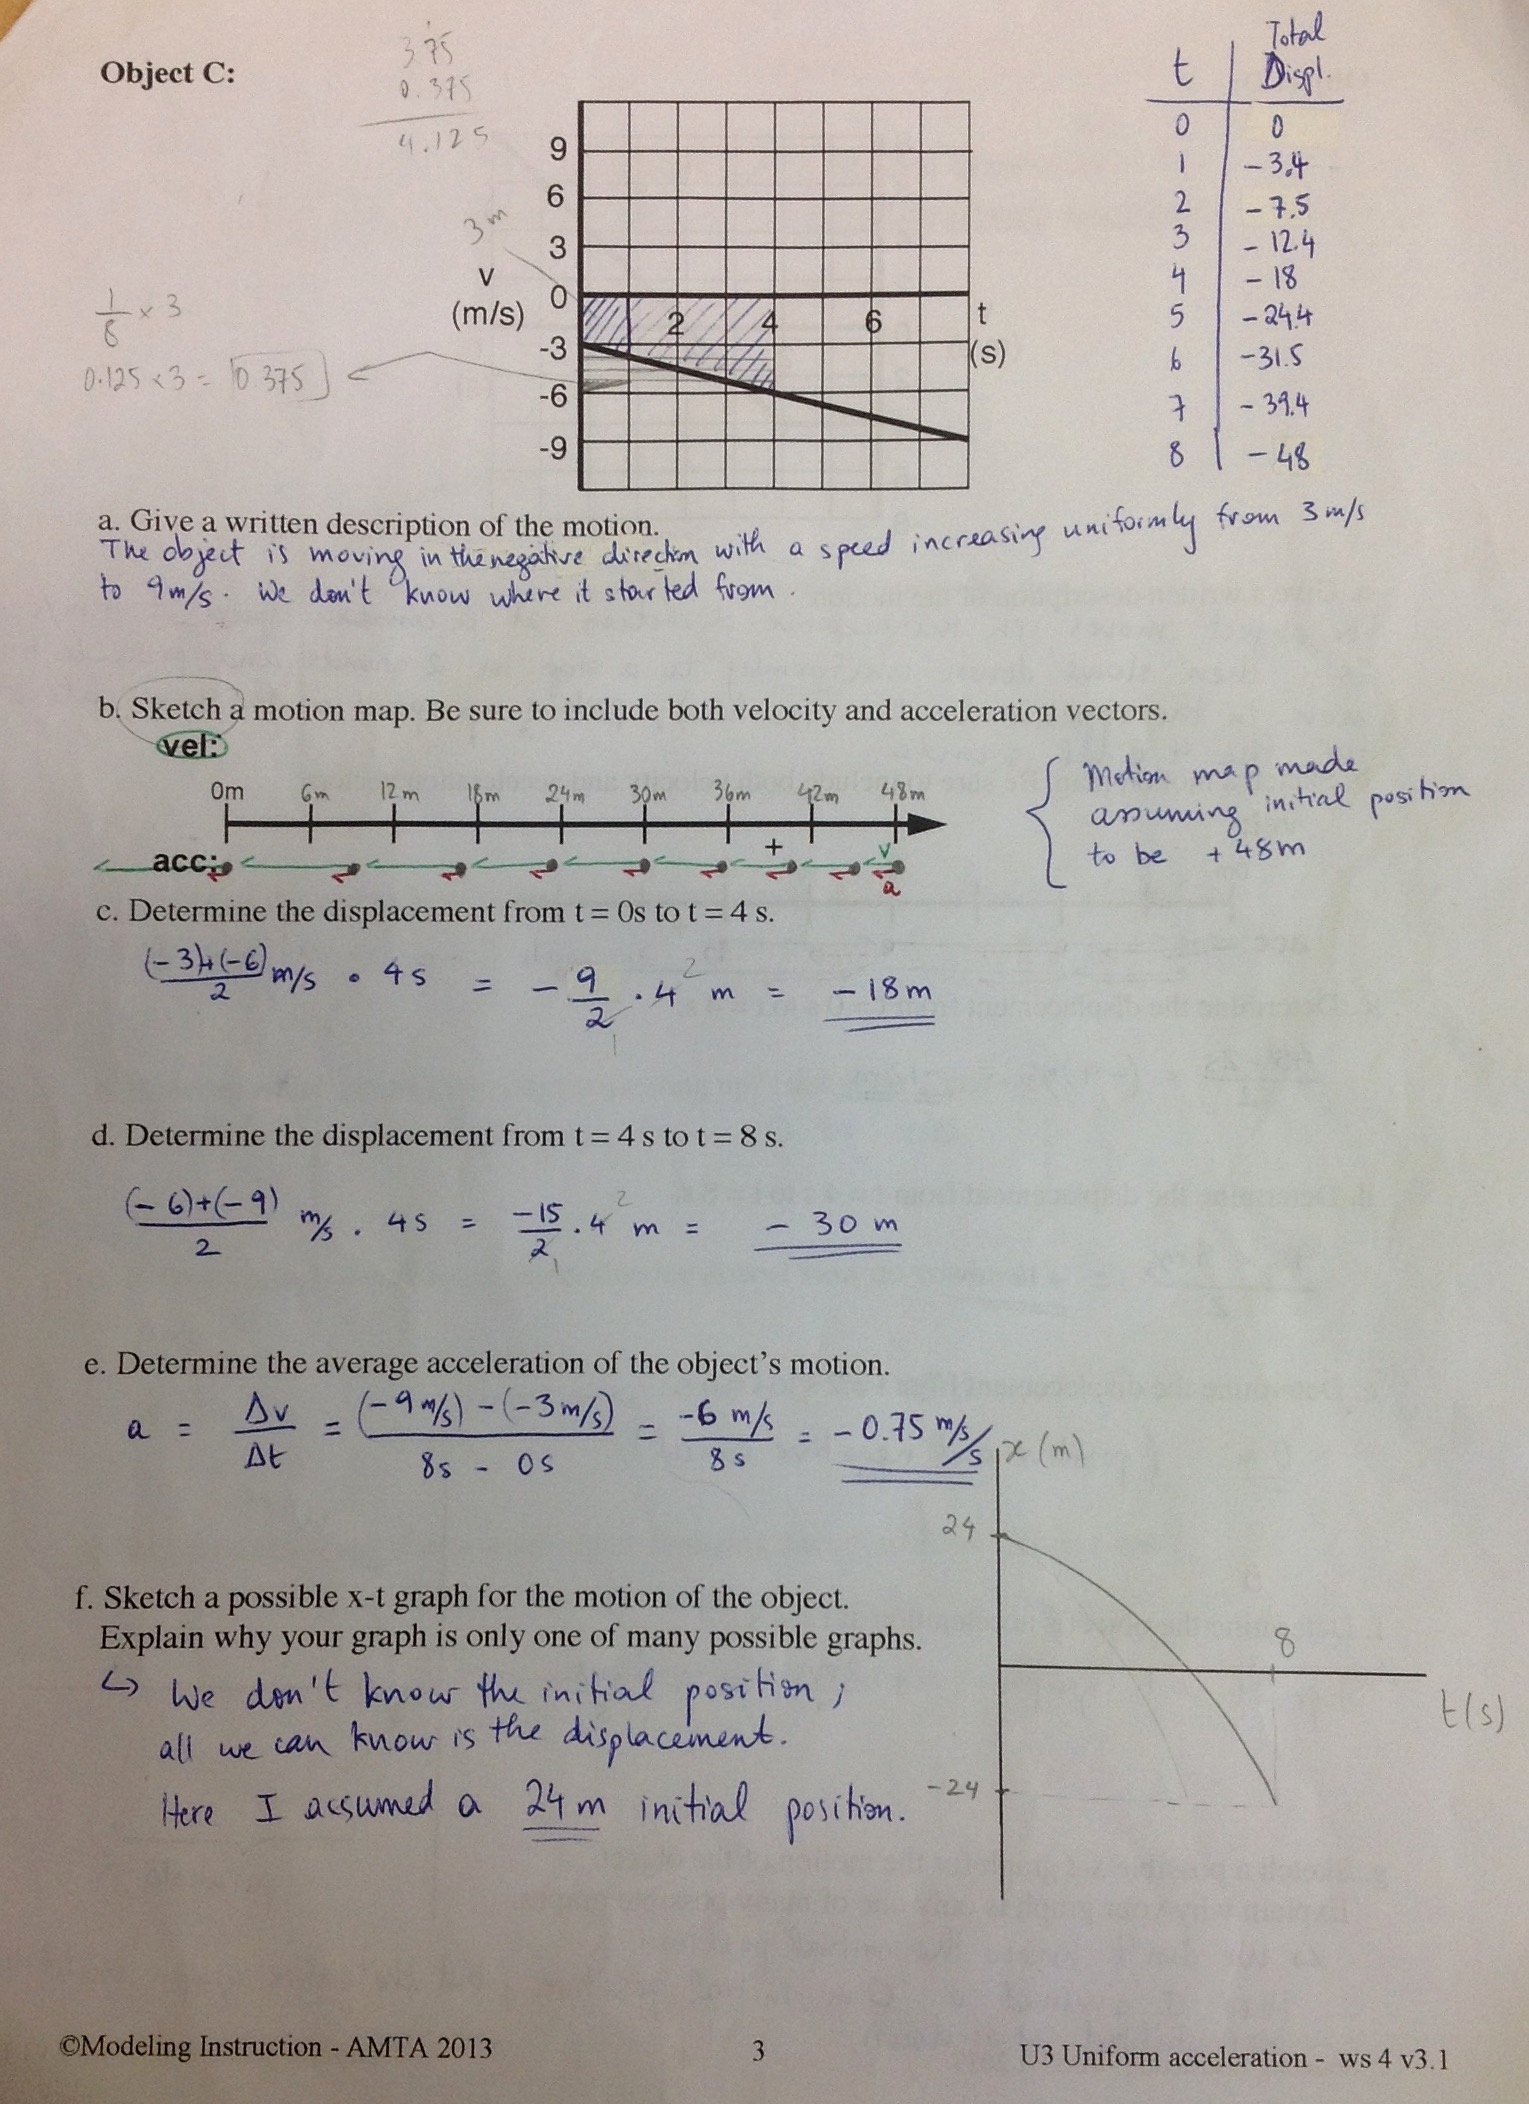 Interpreting Graphs Worksheet Answers Luxury Model Worksheet 4 Interpreting Graphs Accelerated